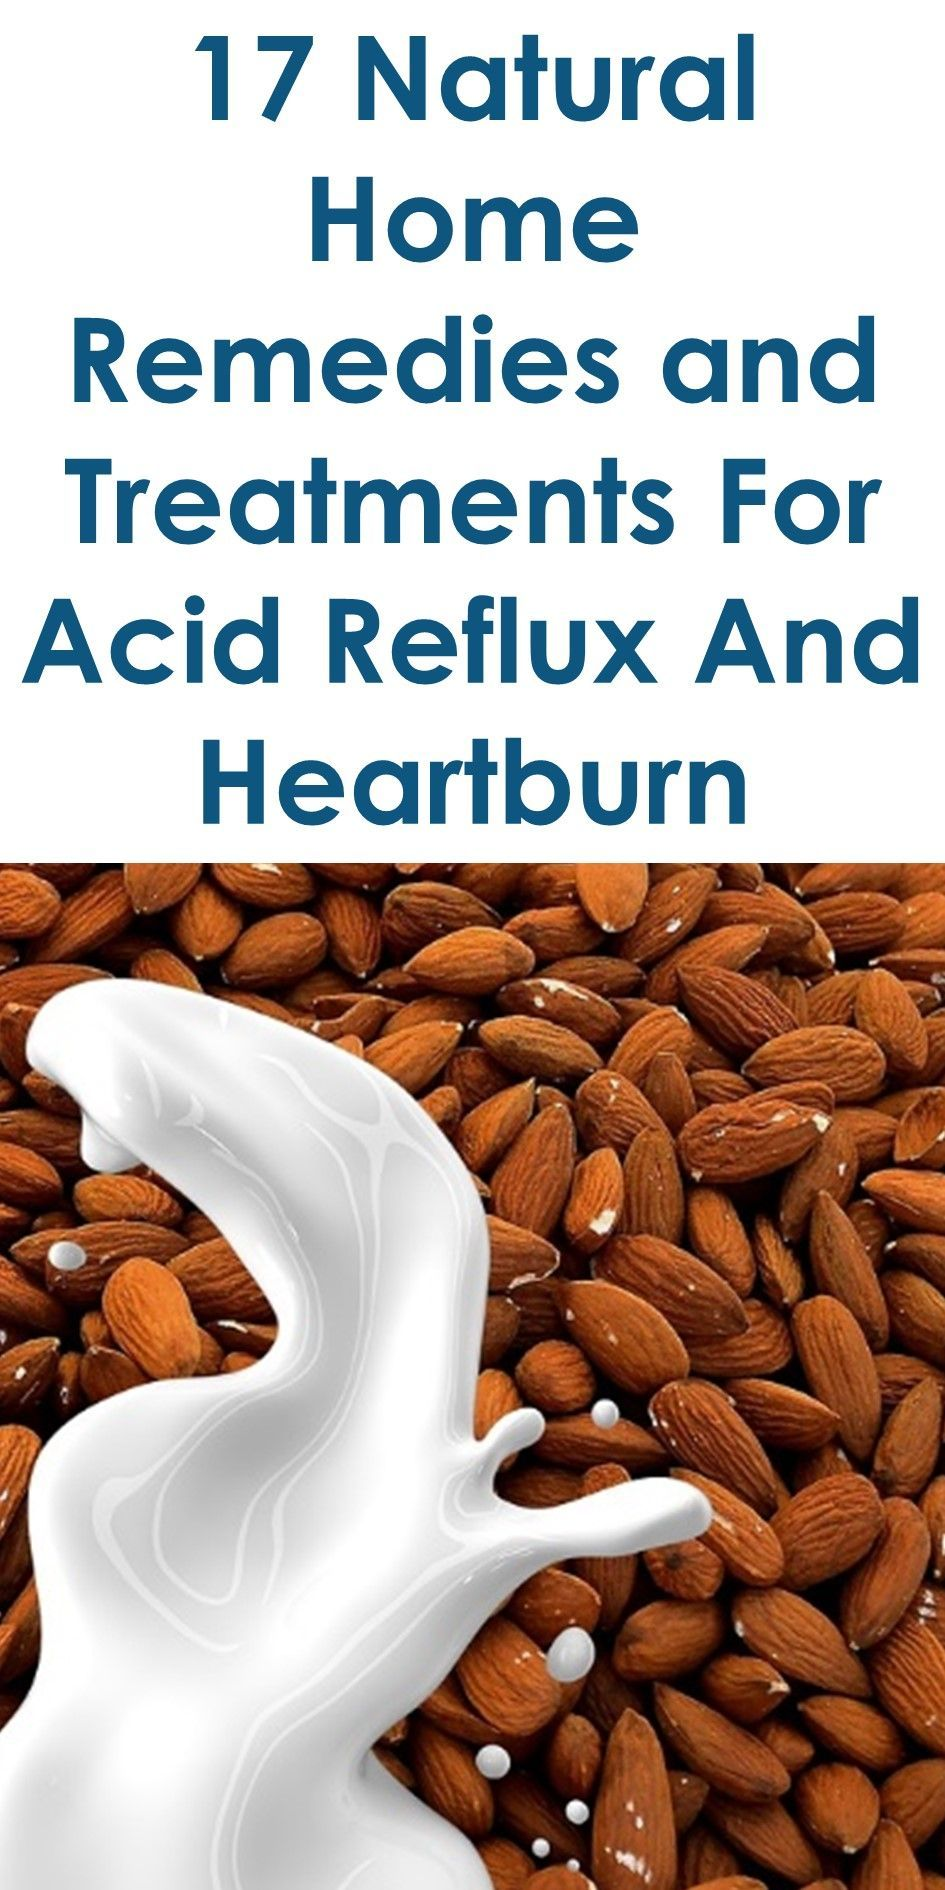 17 natural home remedies and treatments for acid reflux and